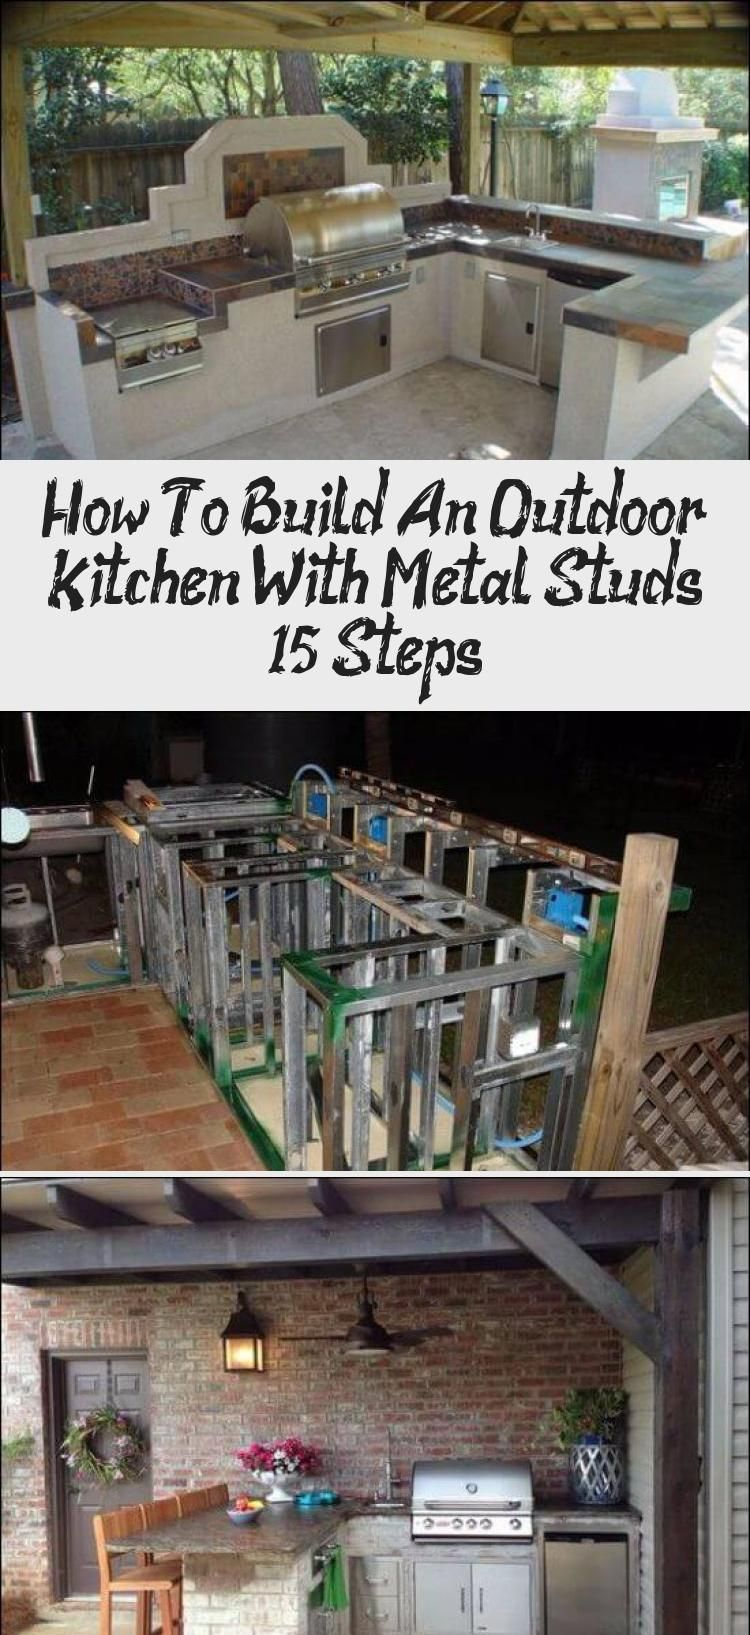 How To Build An Outdoor Kitchen With Metal Studs 15 Steps In 2020 With Images Build Outdoor Kitchen Outdoor Kitchen Outdoor Kitchen Lighting